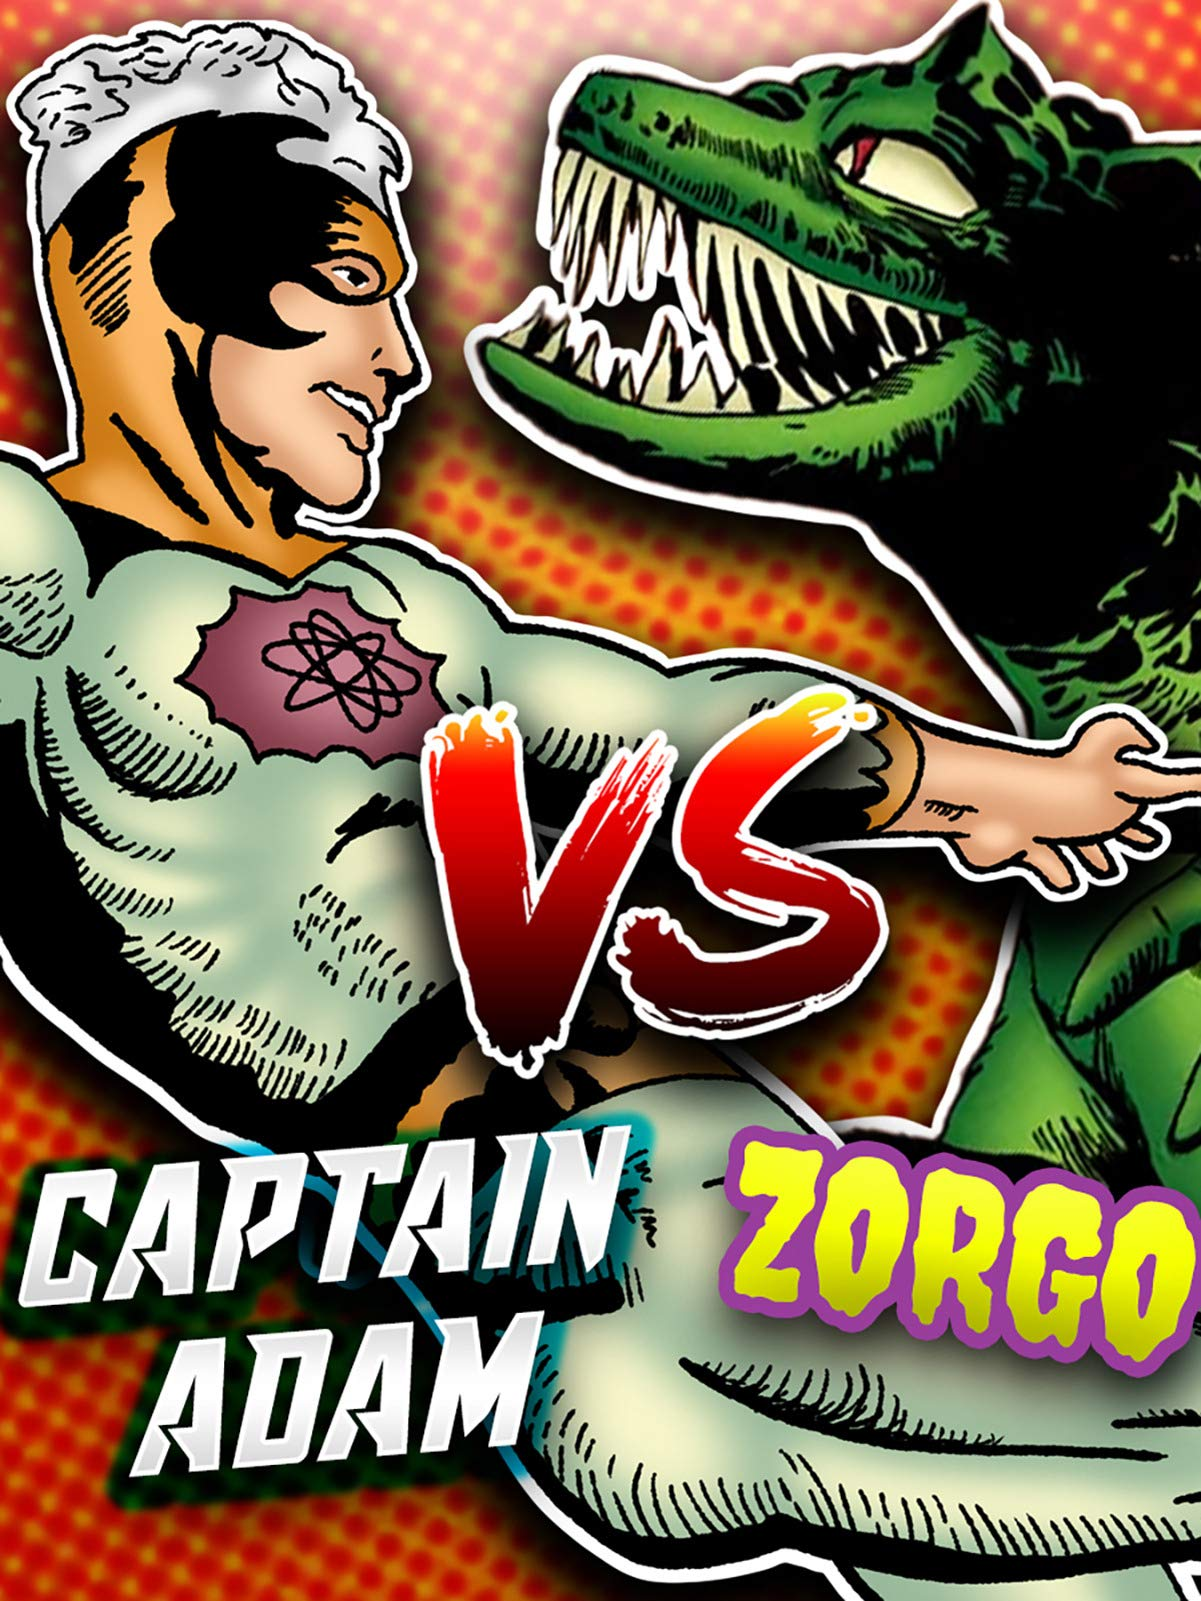 Captain Adam vs Zorgo